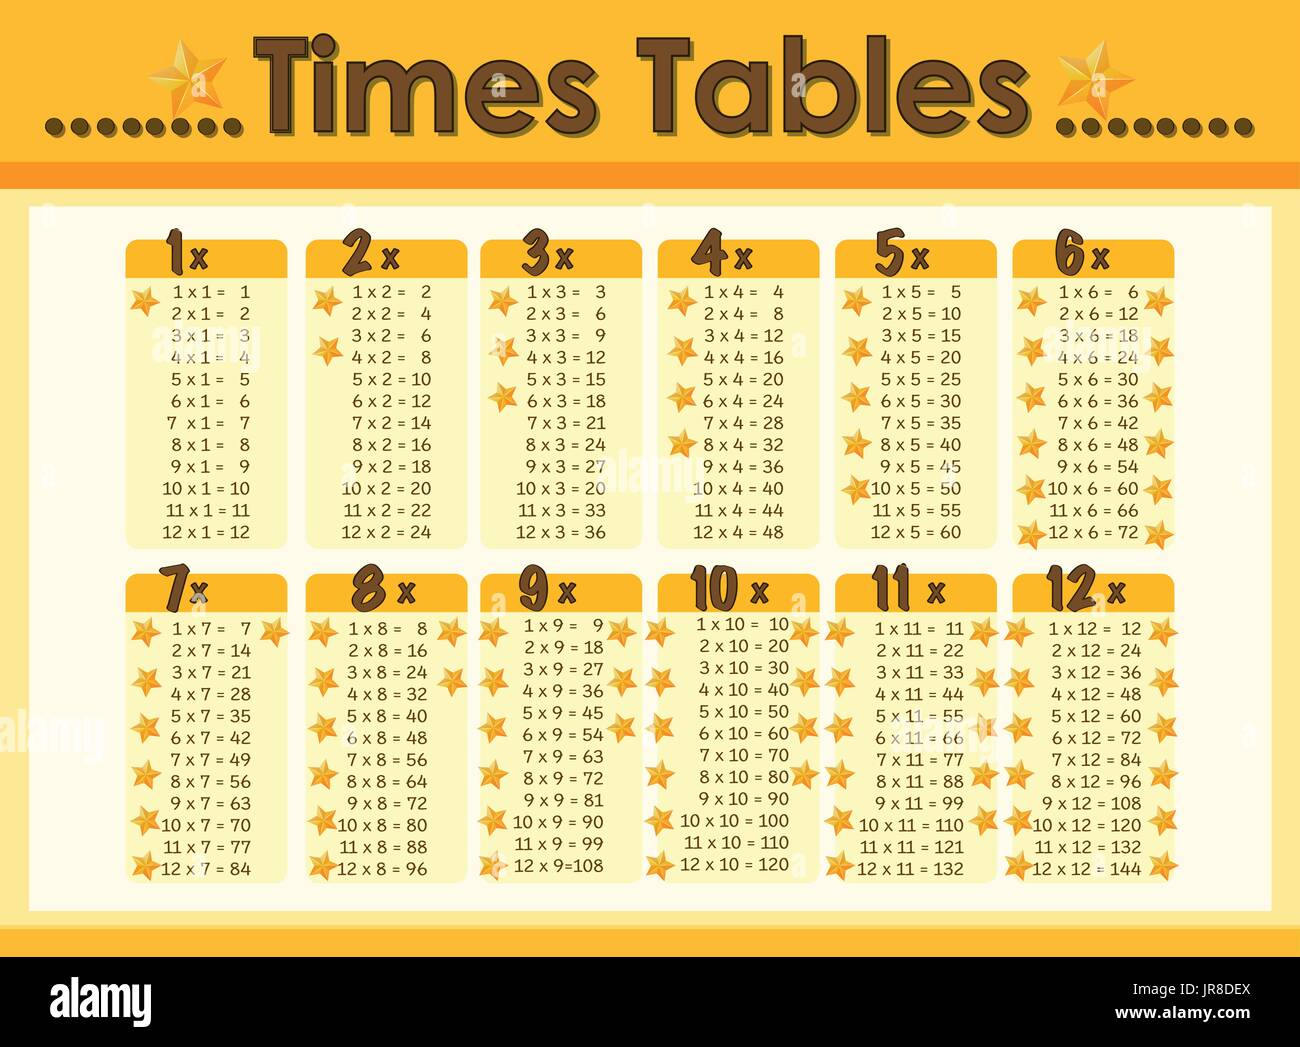 Multiplication tables stock photos multiplication tables stock chart design for times tables illustration stock image gamestrikefo Gallery